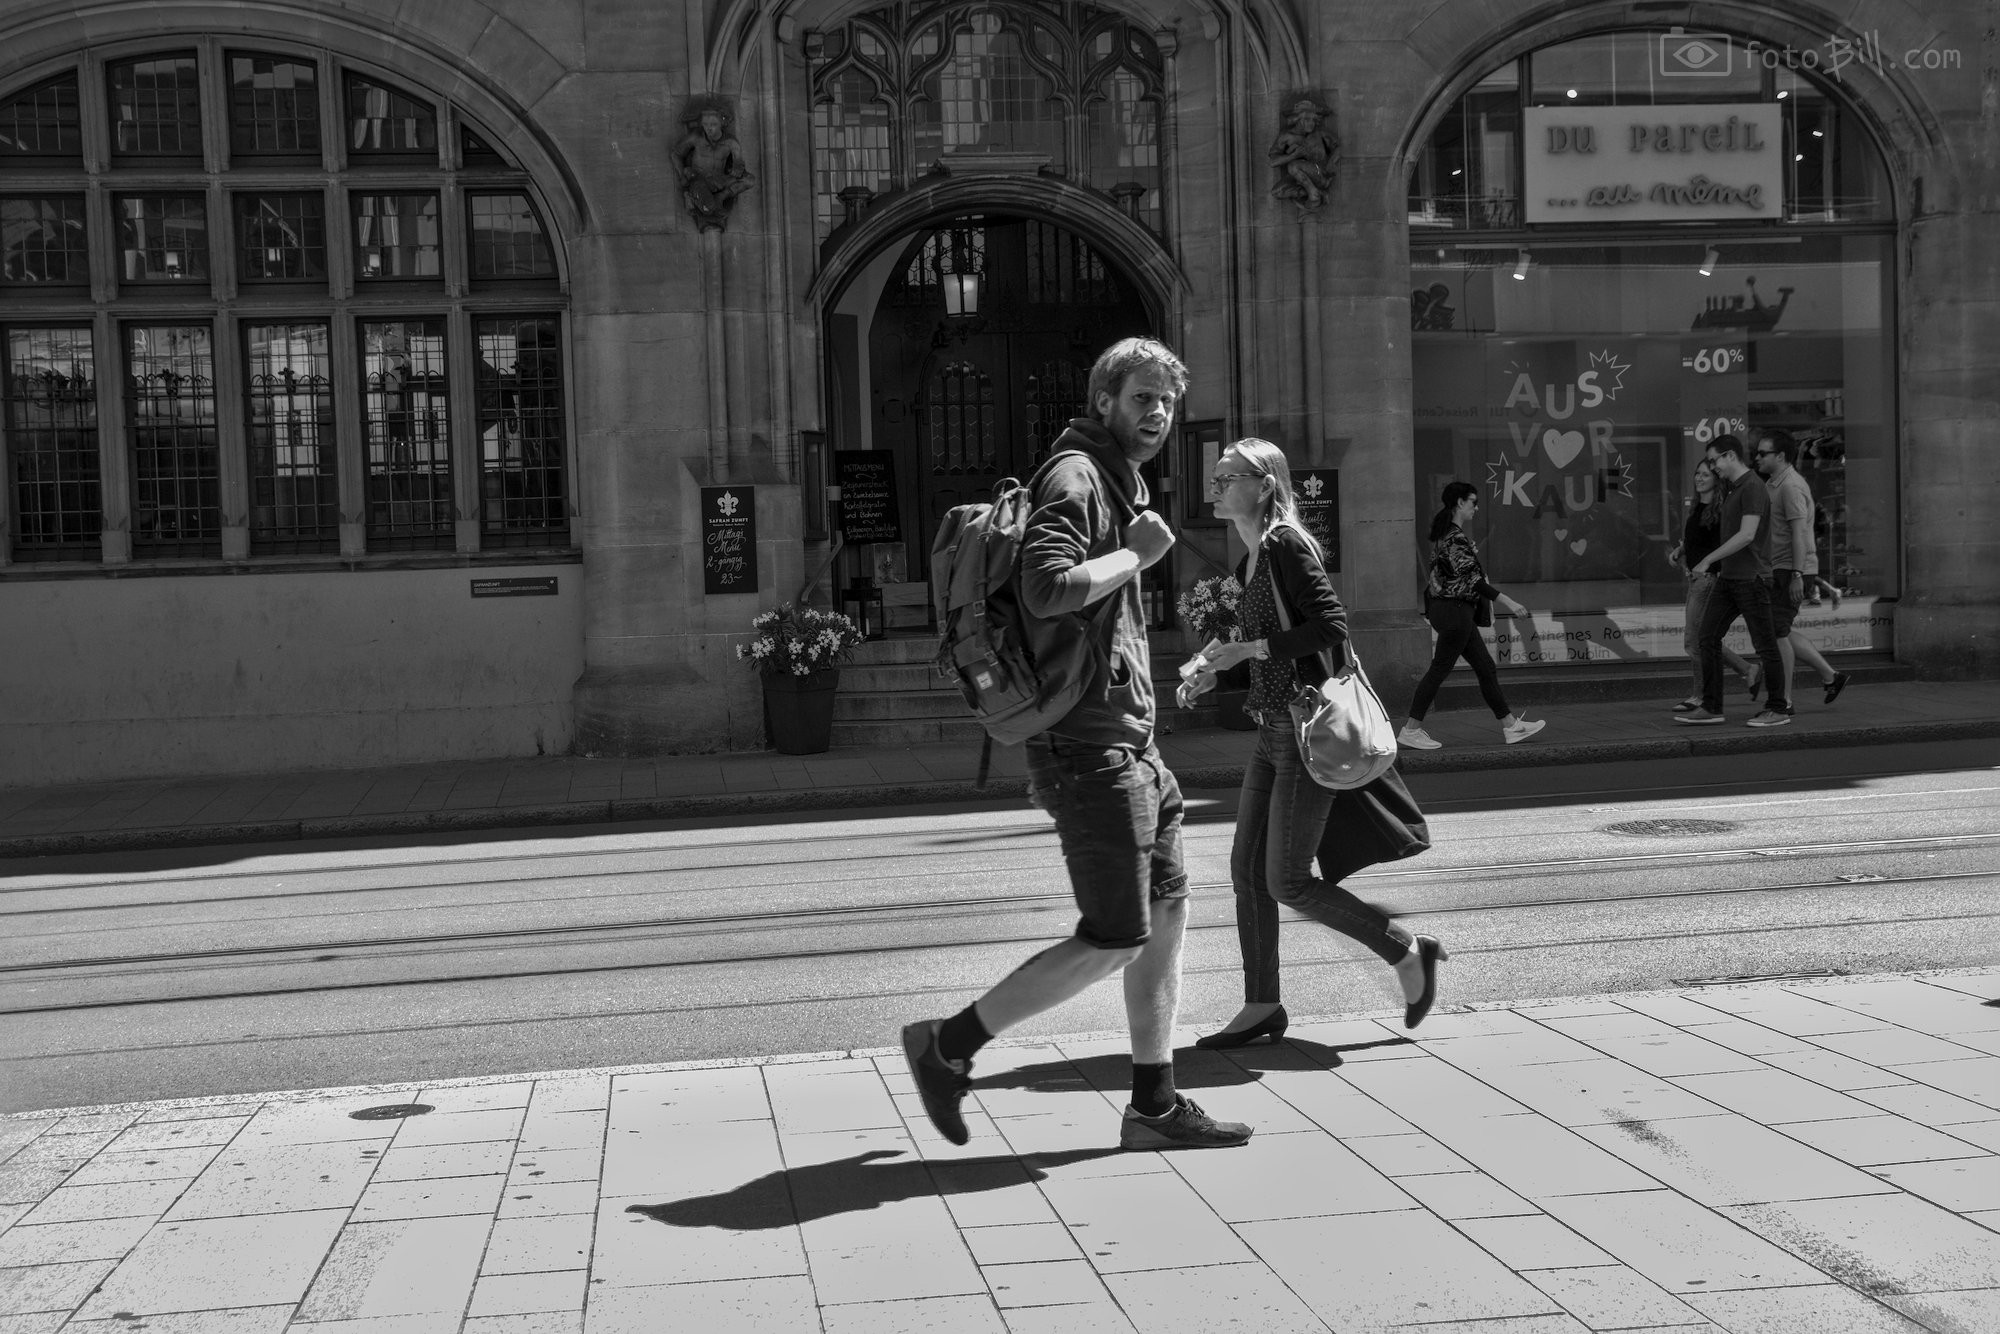 Street_Photo_Basel_0086_slctd_web_noexif.jpg